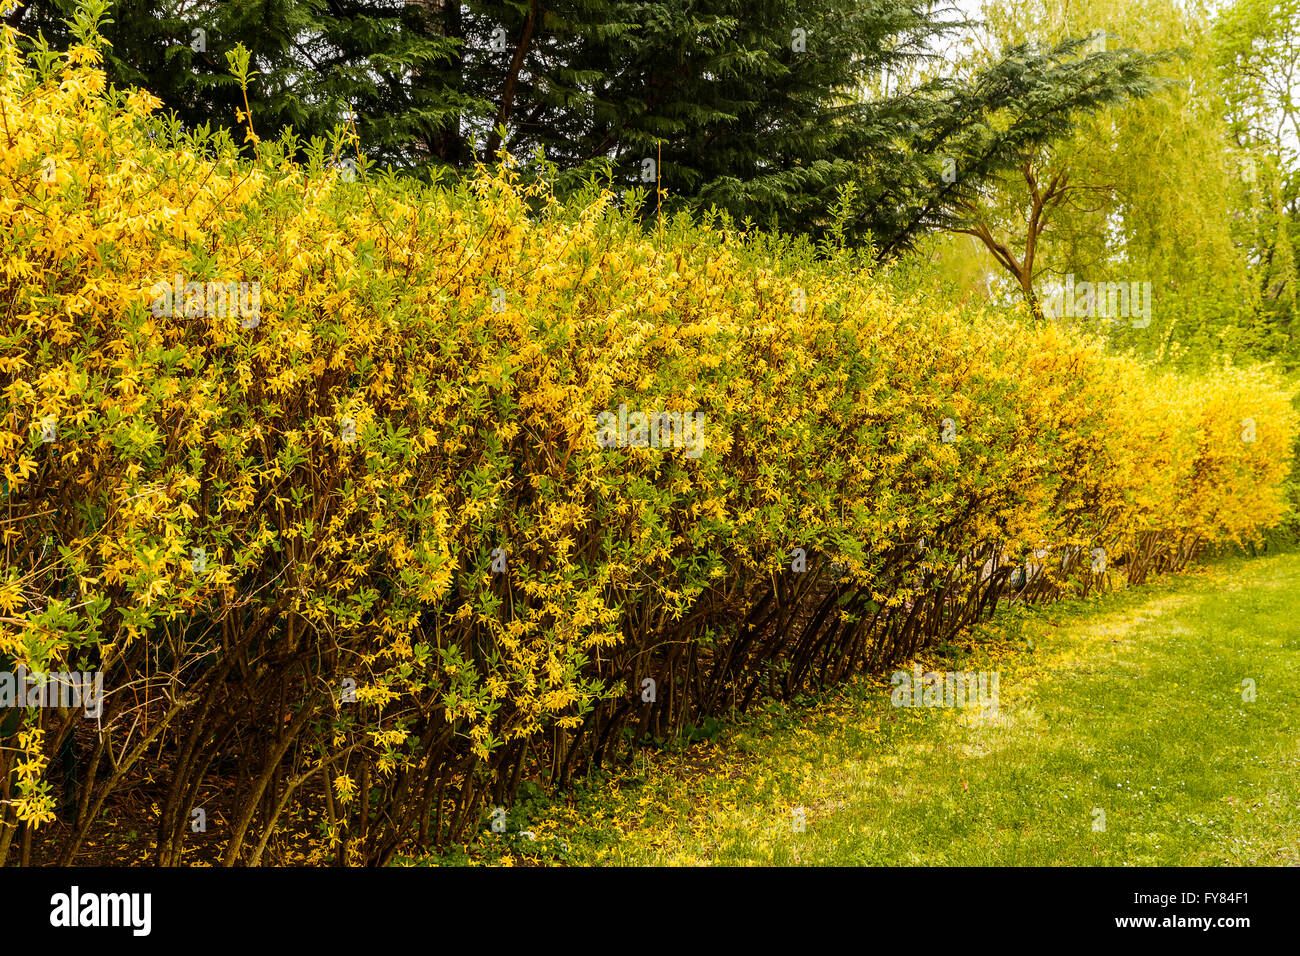 Hedge separating rural house beside the road - Stock Image